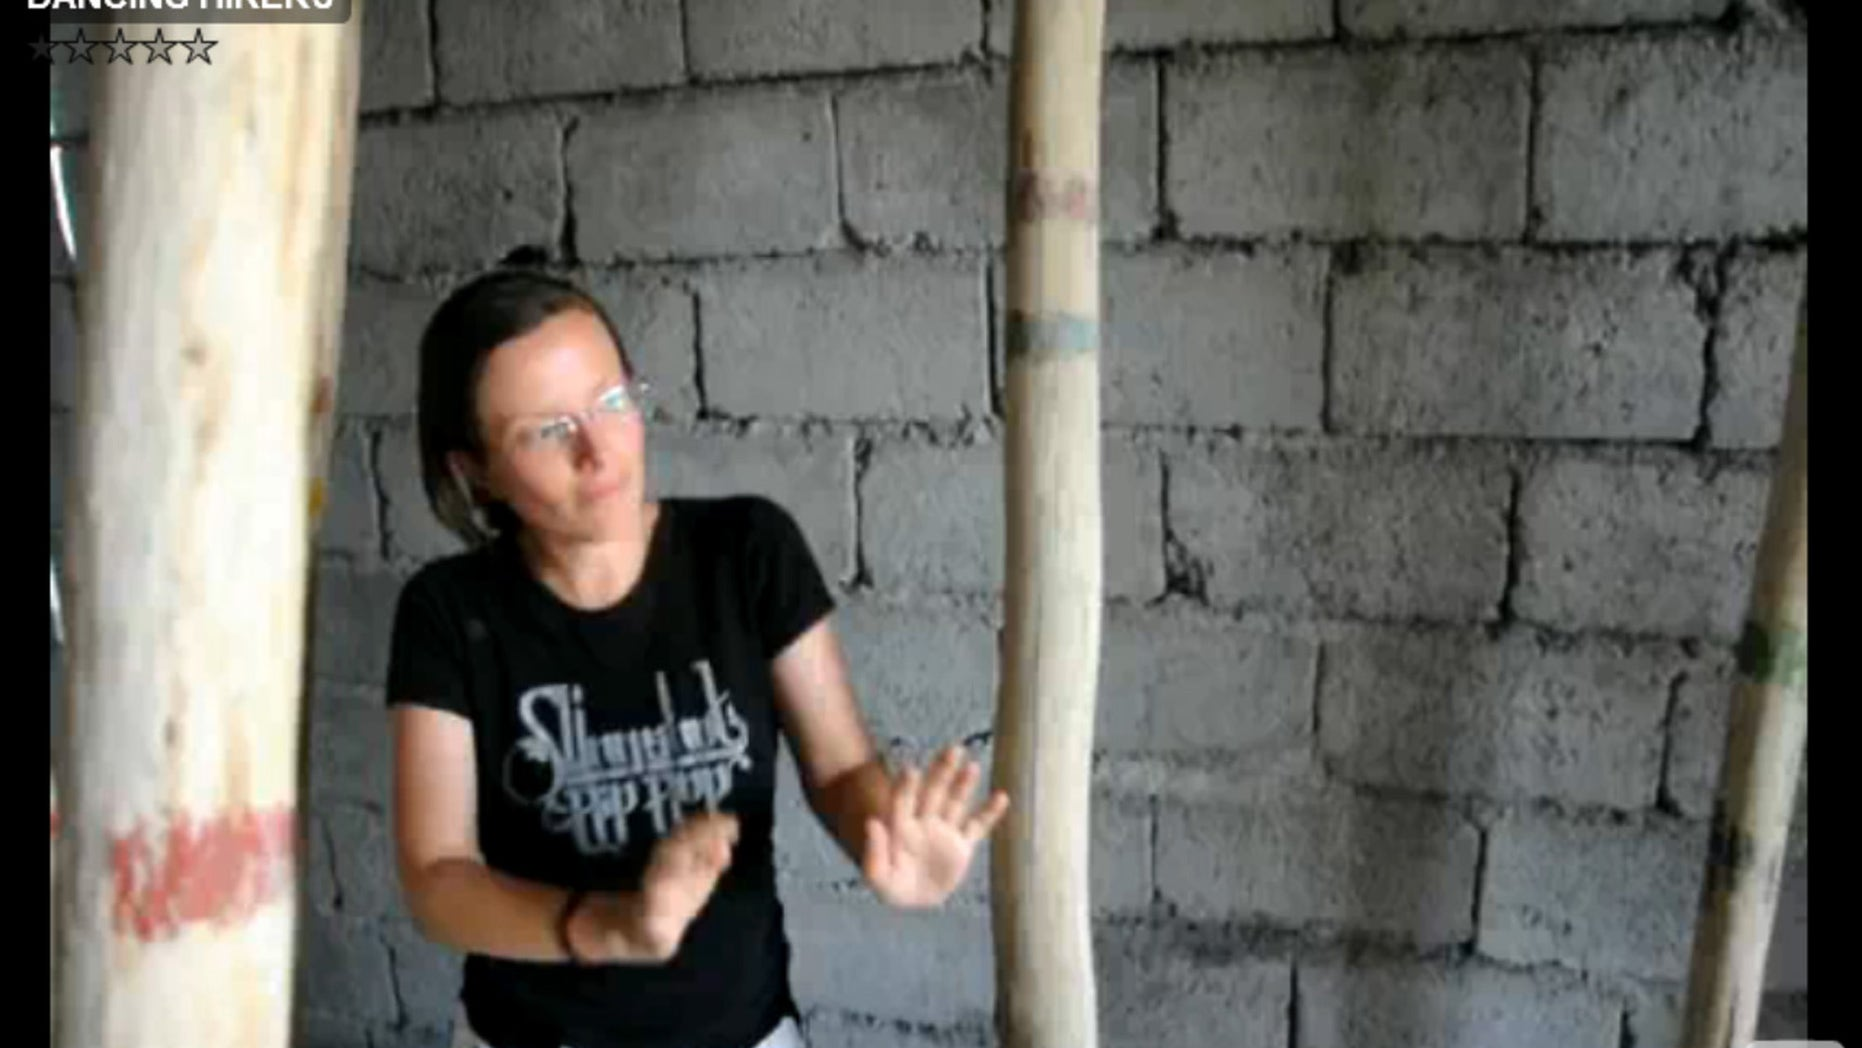 This image made from a July 29, 2009 video released Tuesday, Oct. 27, 2009 by Shon Meckfessel and the families of Shane Bauer, Sarah Shourd and Josh Fattal, shows Shourd dancing in an unfinished cinder block building in the Kurdish city of Irbil, Iraq. The families of three Americans being held in Iran released video footage Tuesday that they say proves the three were simply on vacation and had no underhand intentions when they strayed across the border. (AP Photo/Shon Meckfessel)  NO SALES